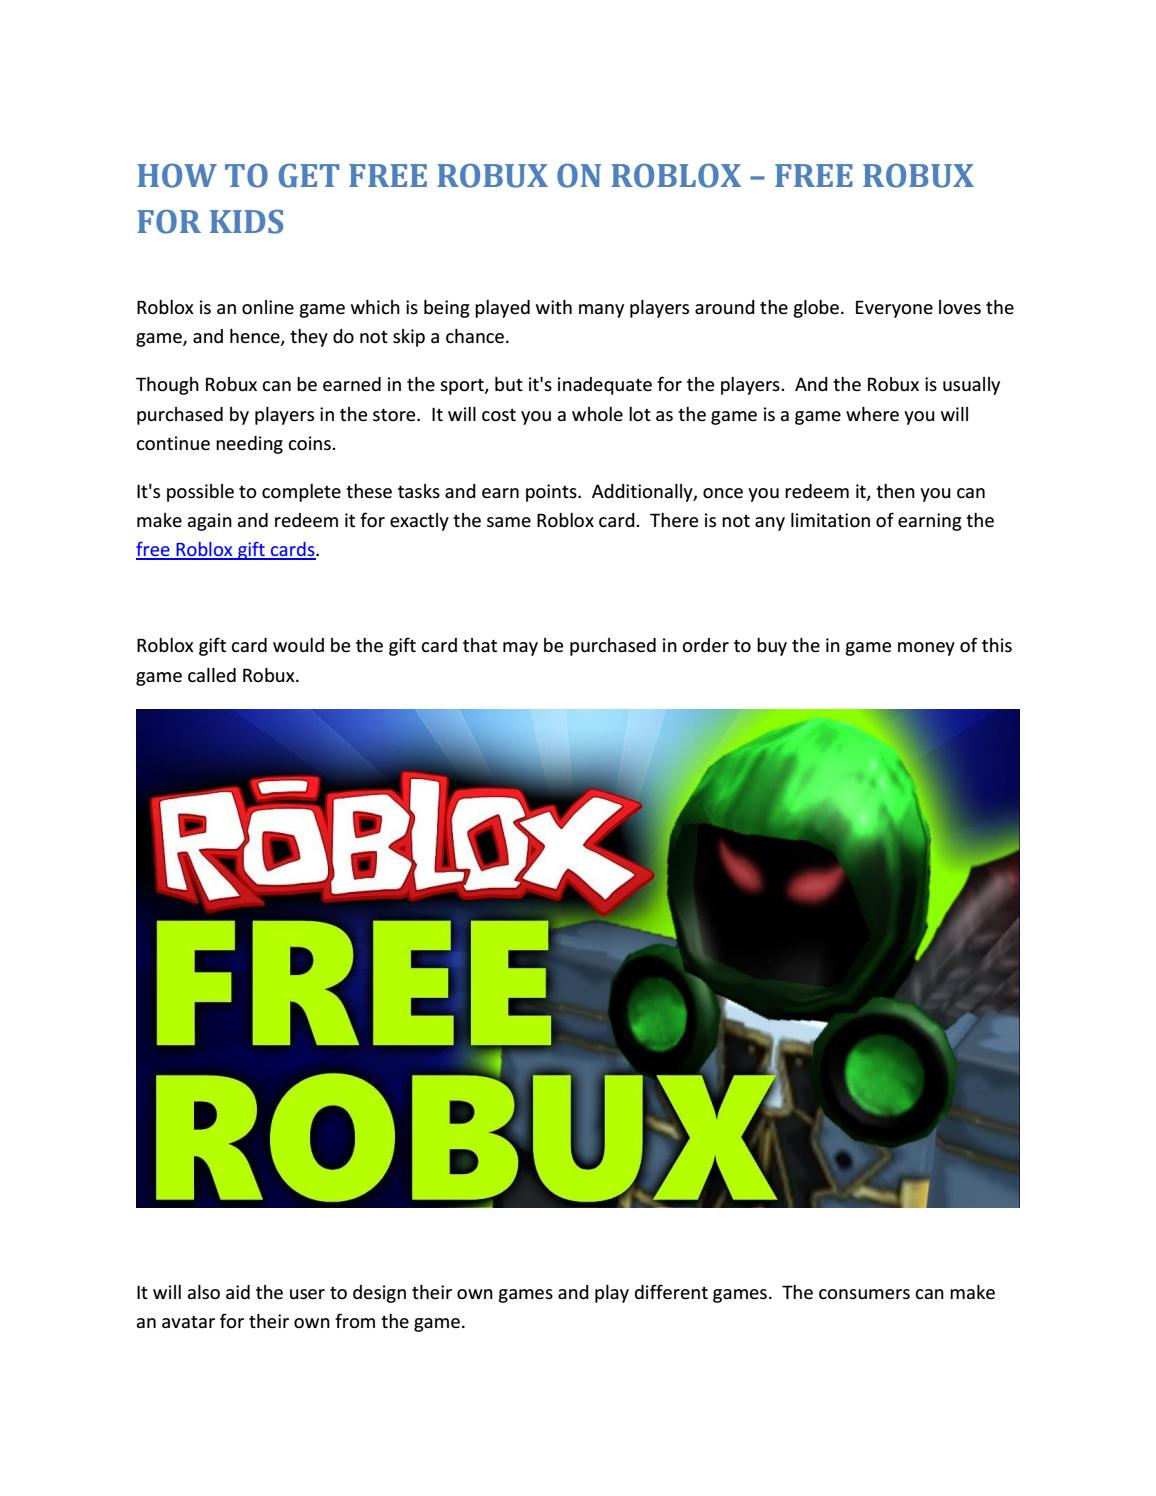 Need Some Free Robux For Kids Check Out This New Robux Generator